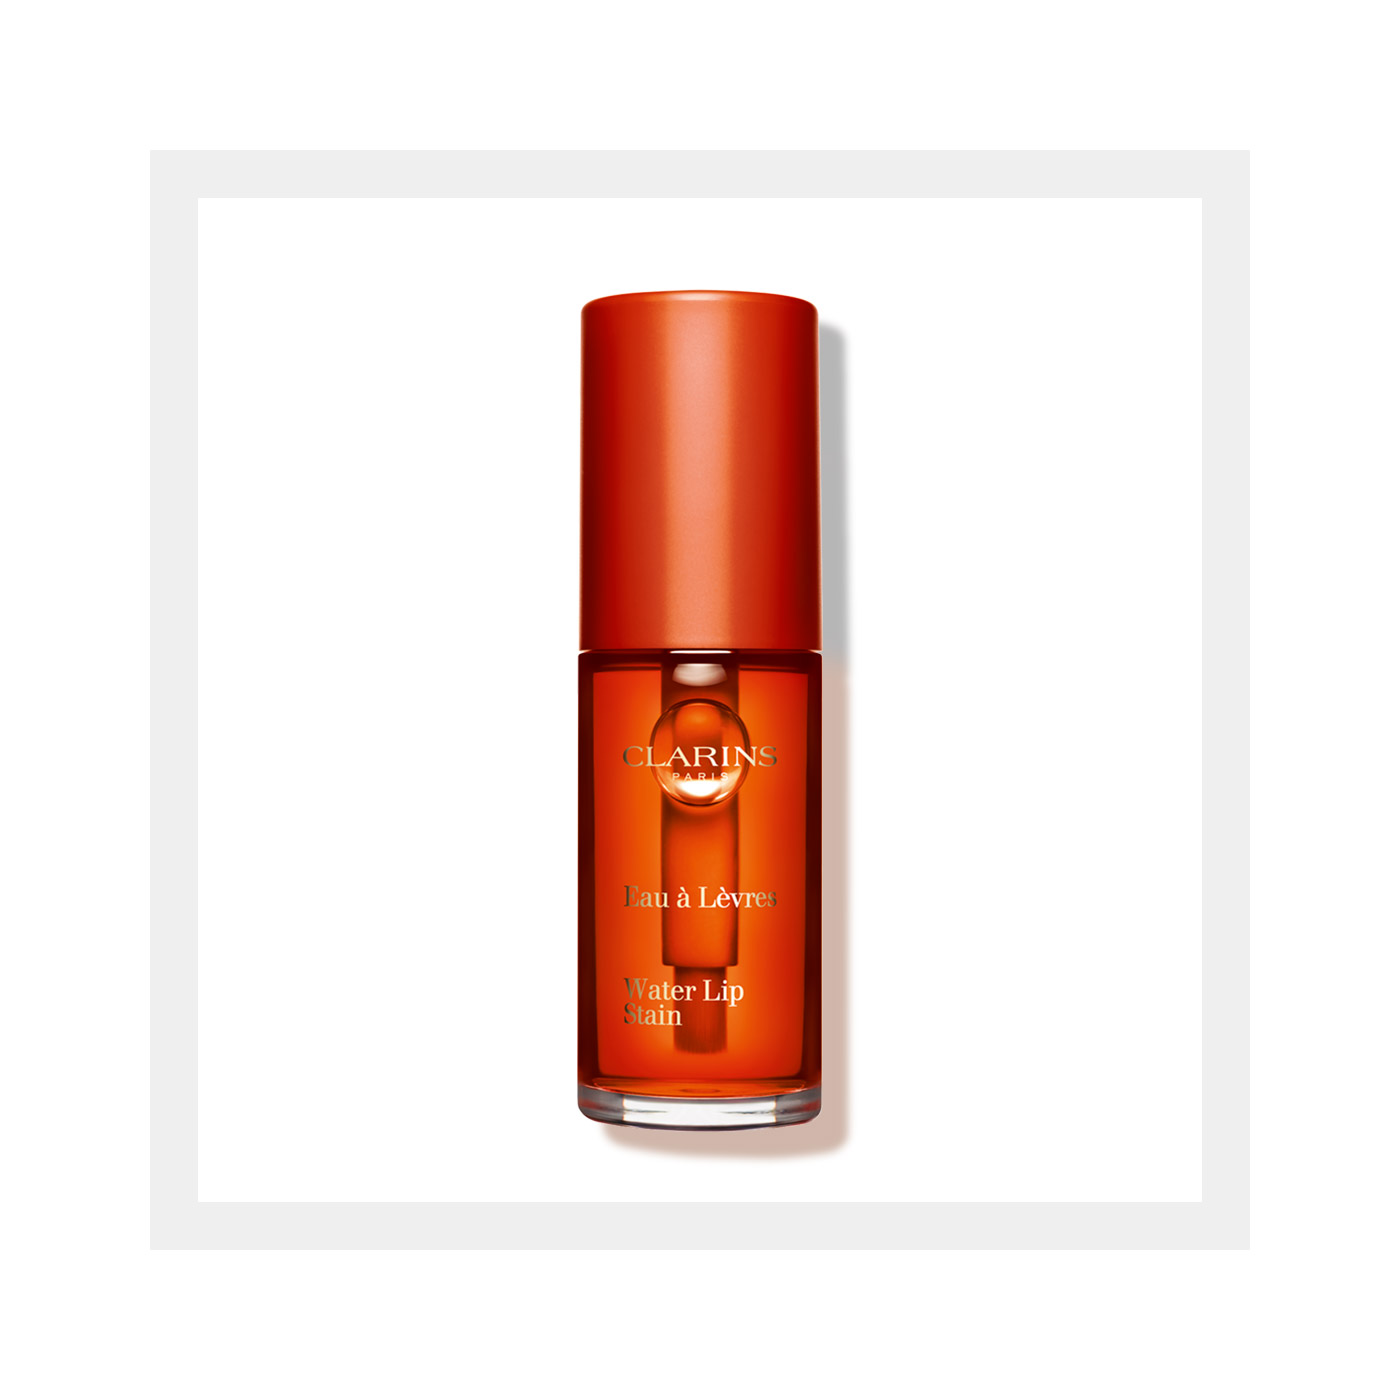 a654fde856 Water Lip Stain - Clarins